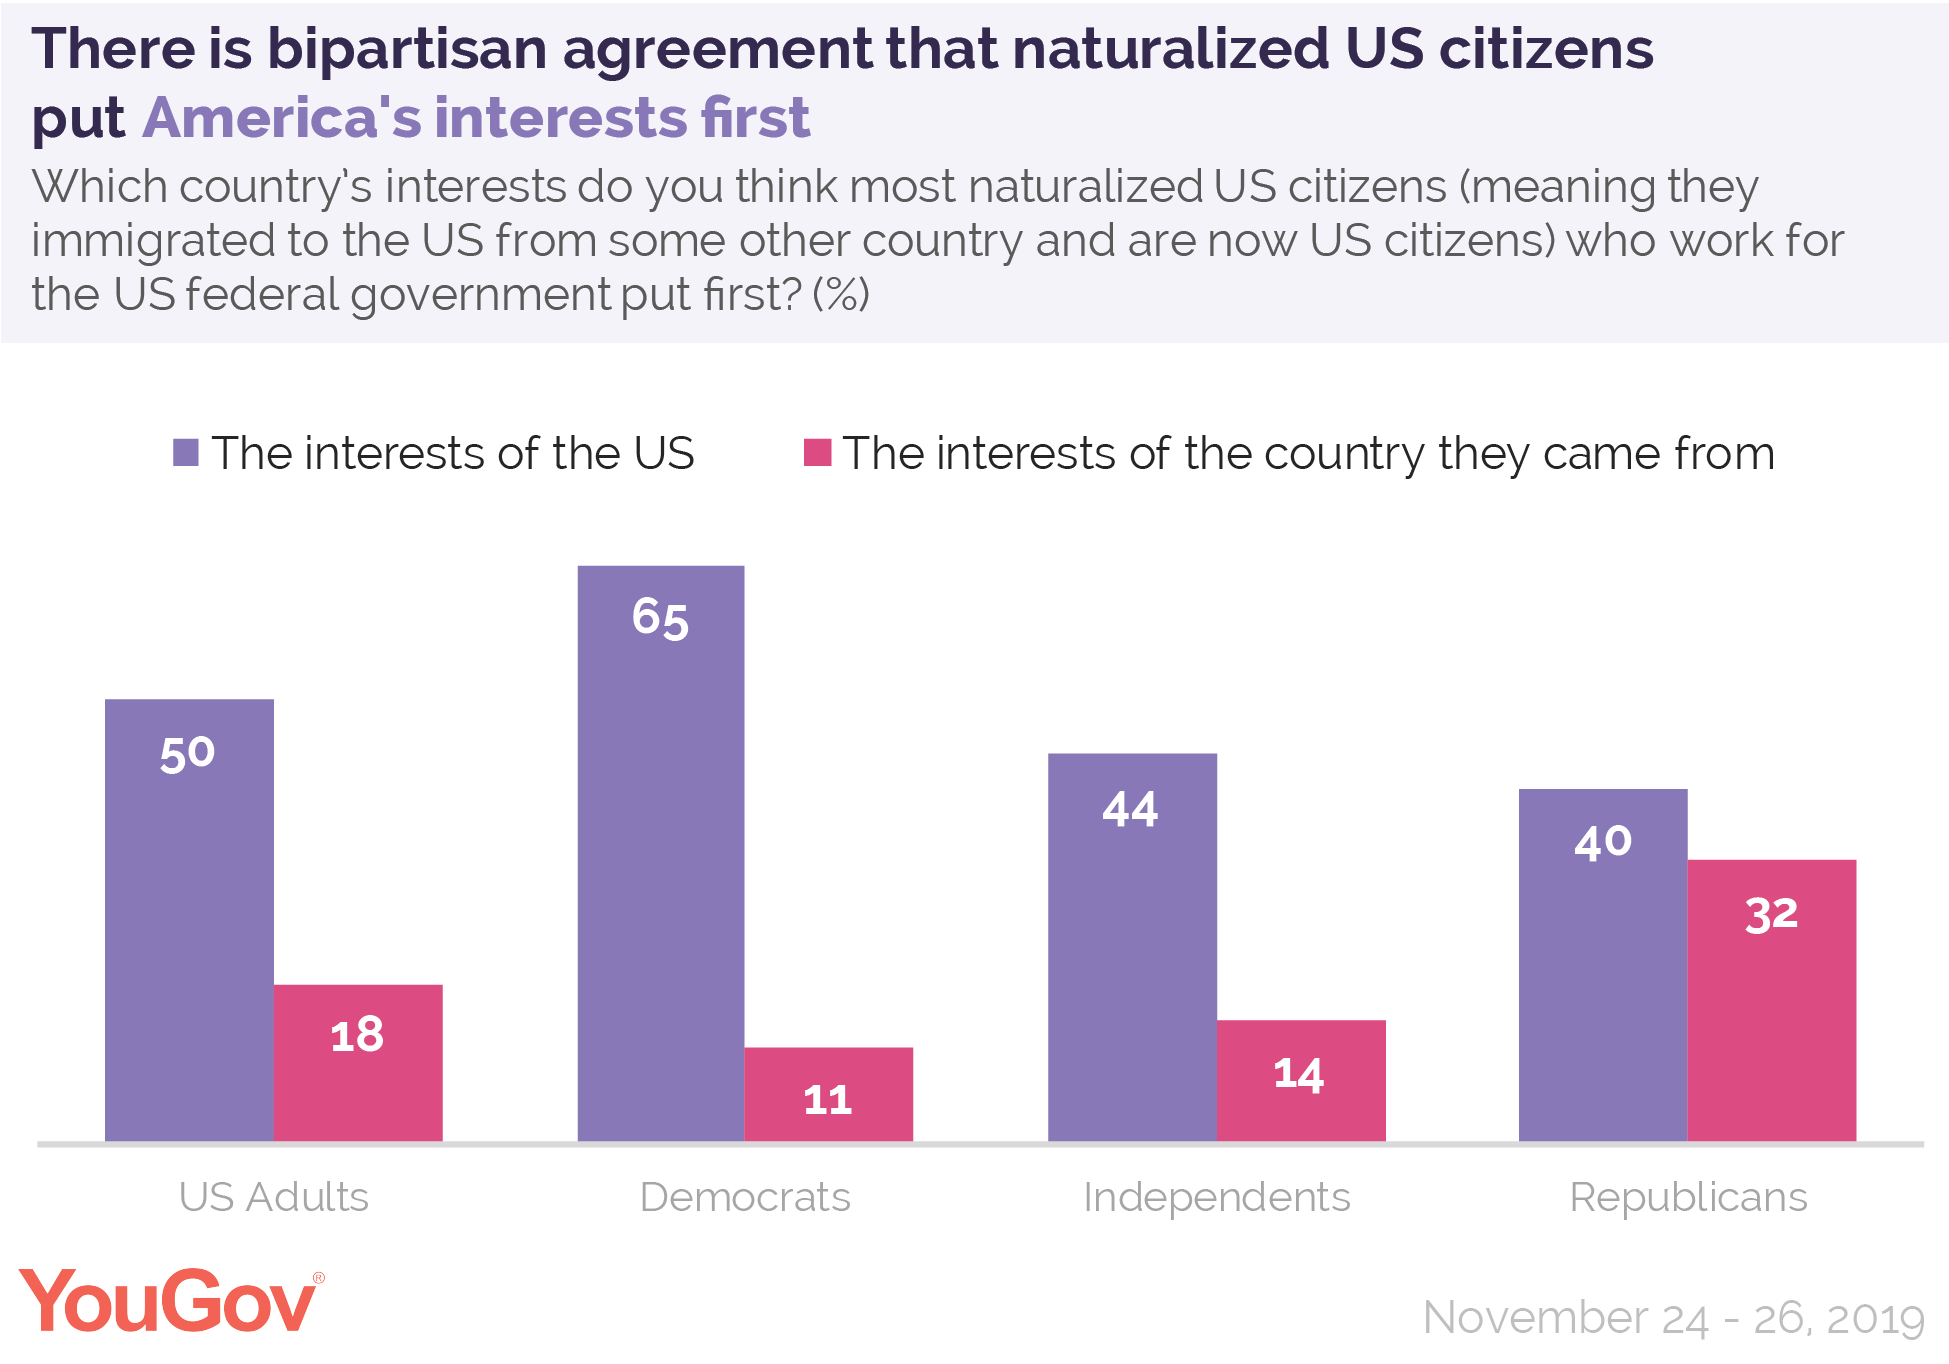 There is bipartisan agreement that naturalized US citizens put America's interests first